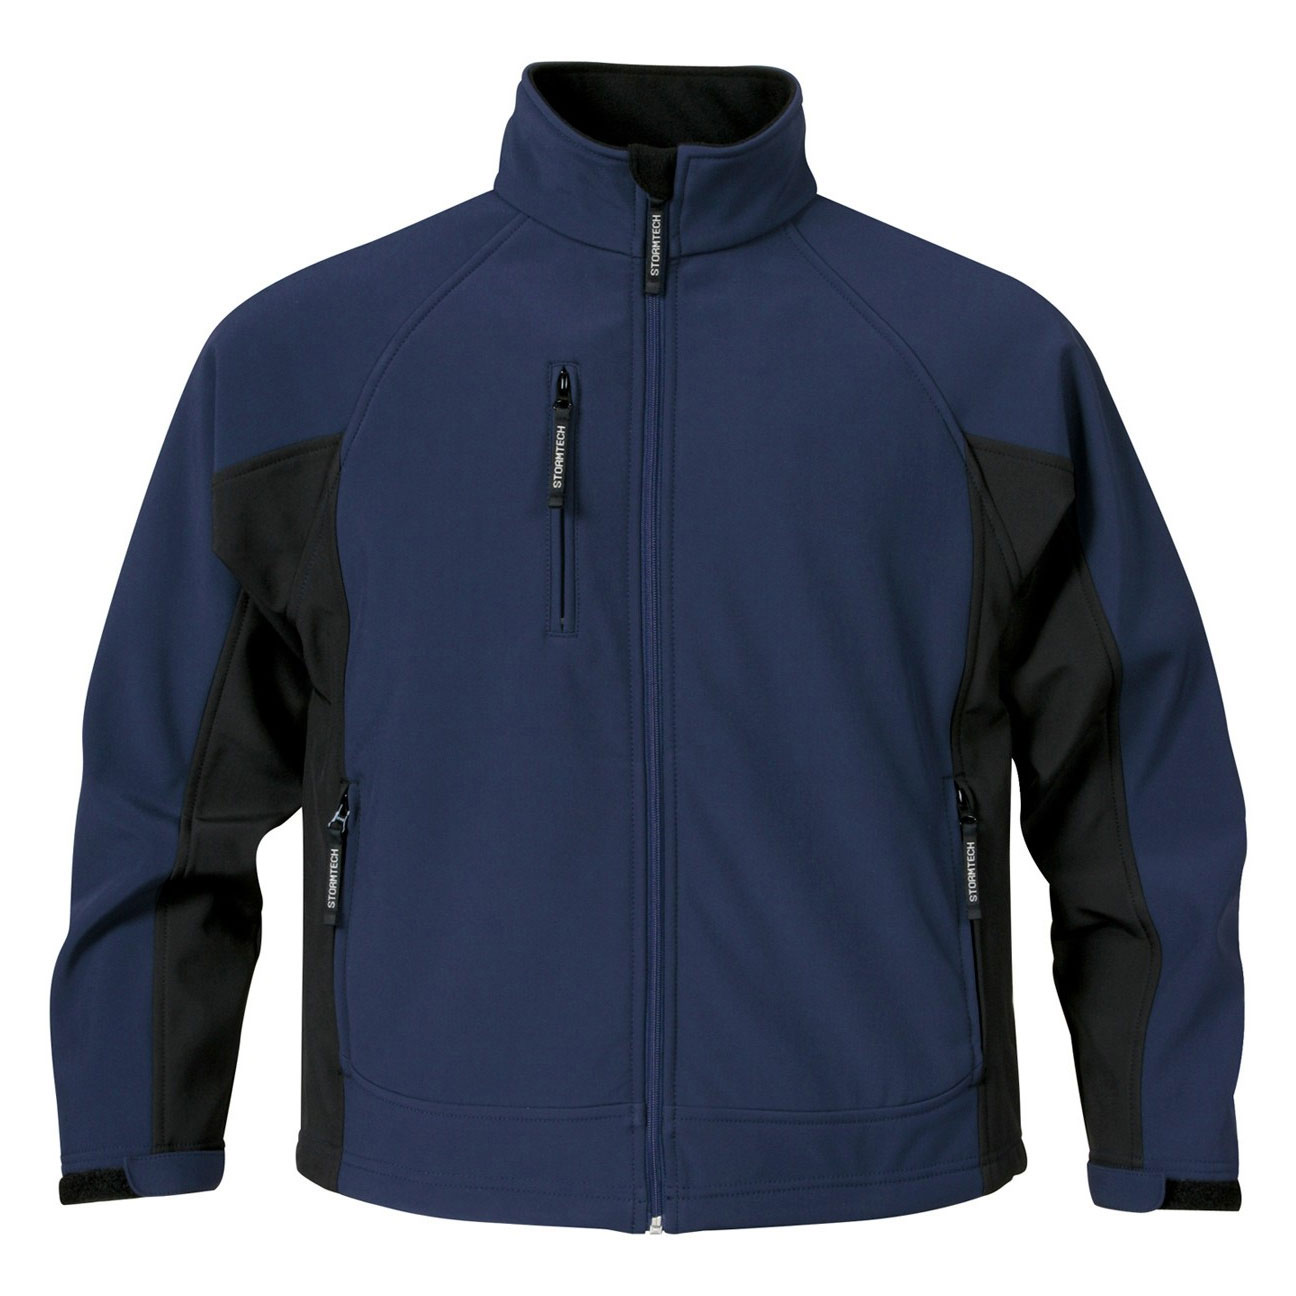 StormTech Youth Crew Bonded Shell Jacket